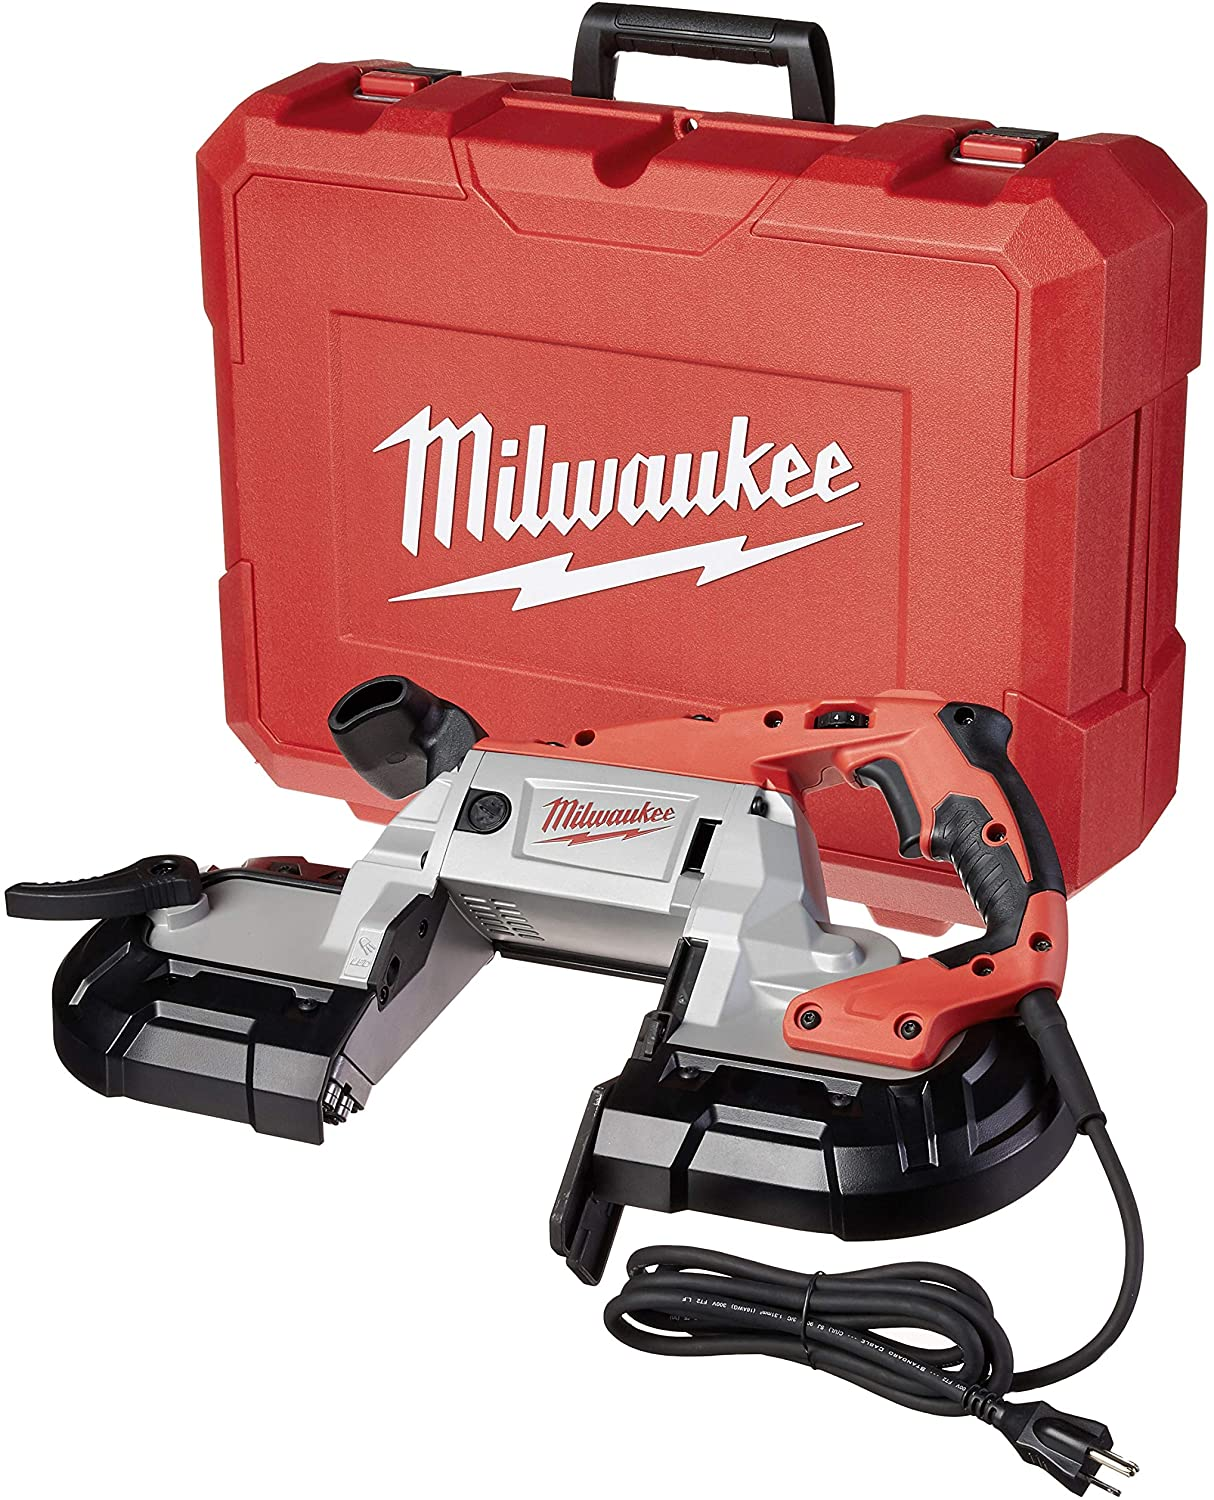 MILWAUKEE'S 6232-21 Popular brand Deep Cut Band 5619-20 At the price Saw Case W